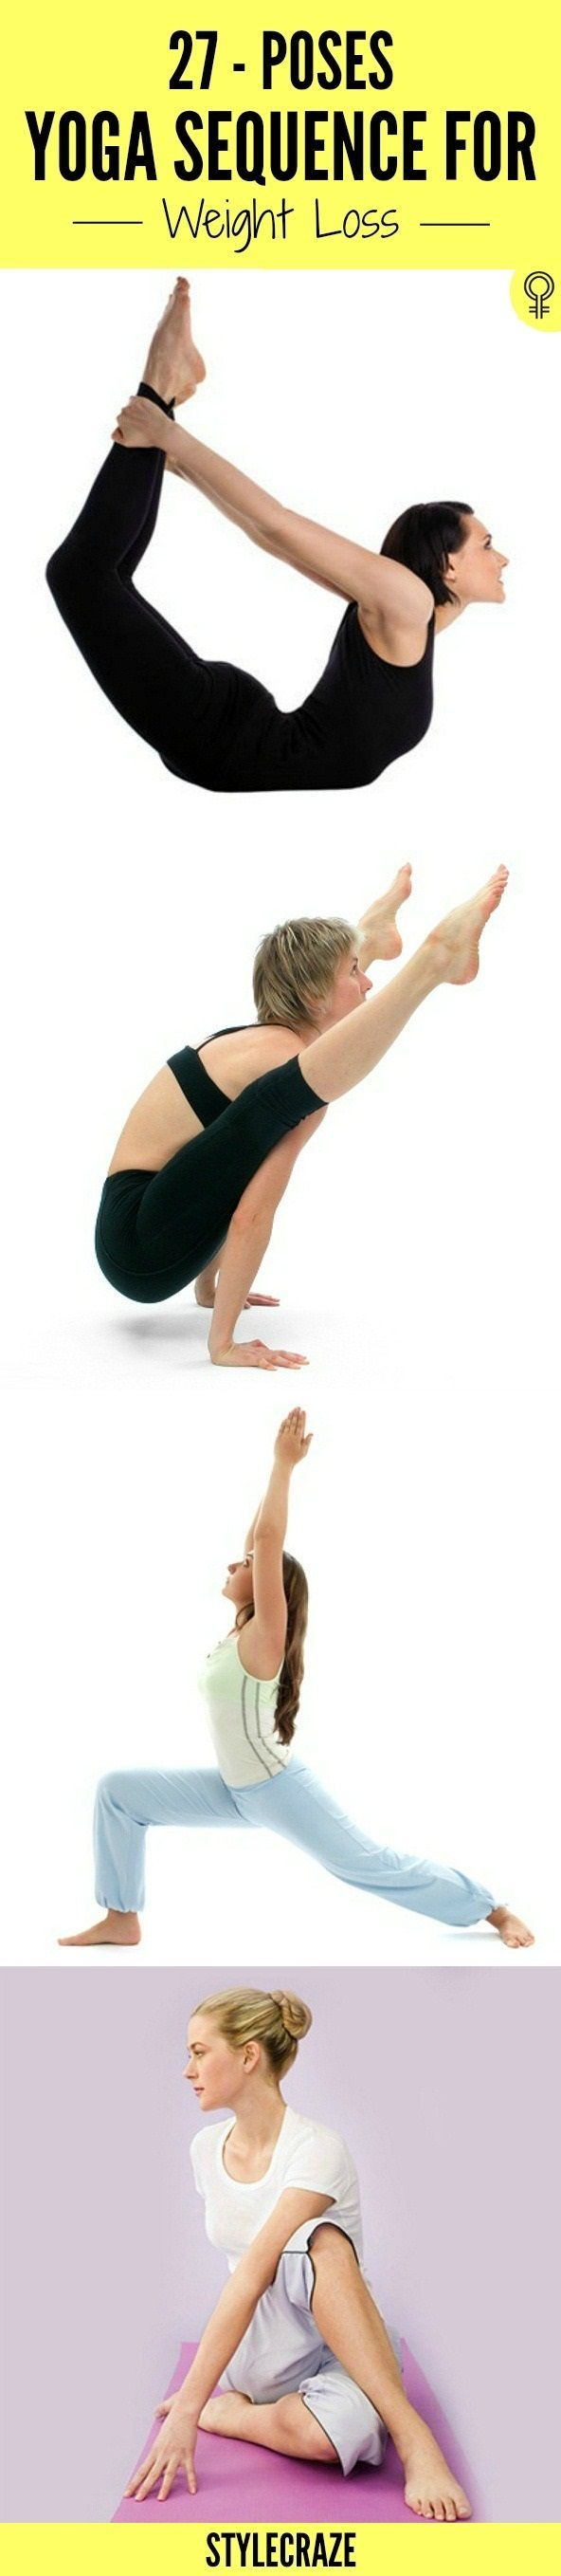 Best Yoga For Weight Loss Images On Pinterest Drawings - Best yoga posesasanas for quick weight loss